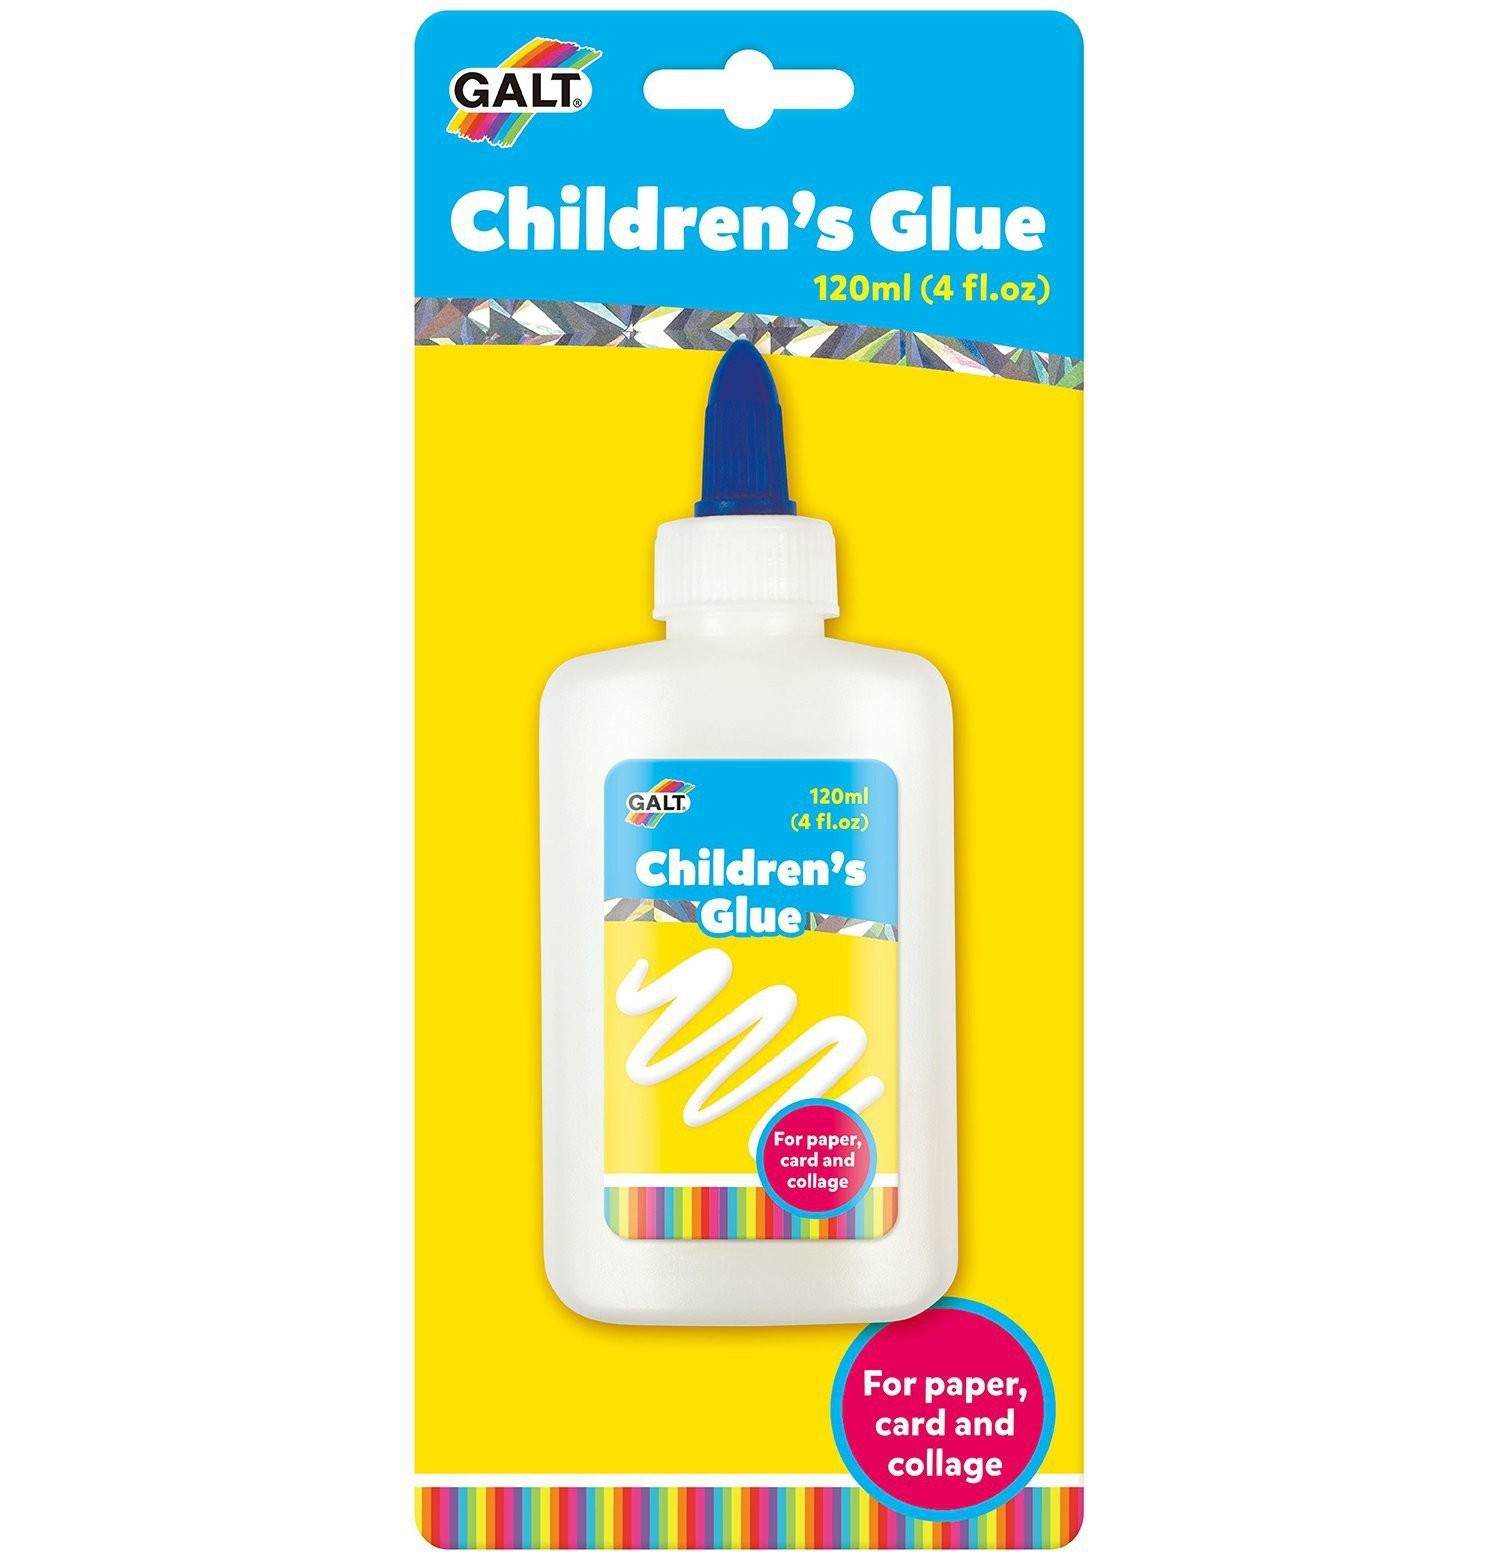 Galt Children's Glue